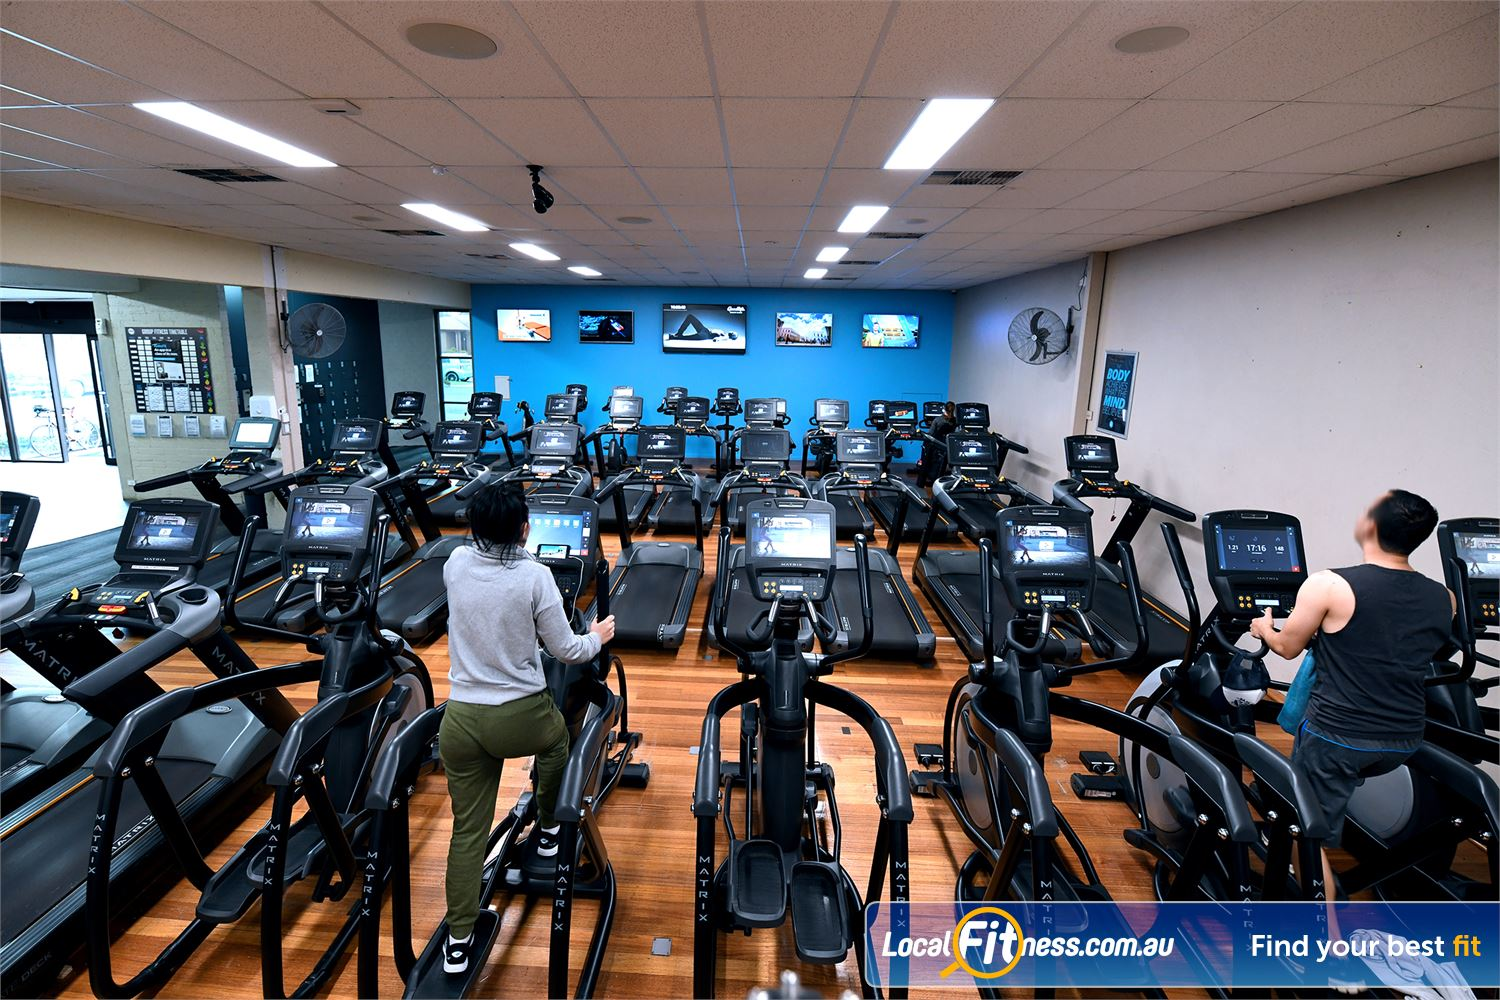 Goodlife Health Clubs Hoppers Crossing Our Hoppers Crossing gym includes a massive cardio theatre.